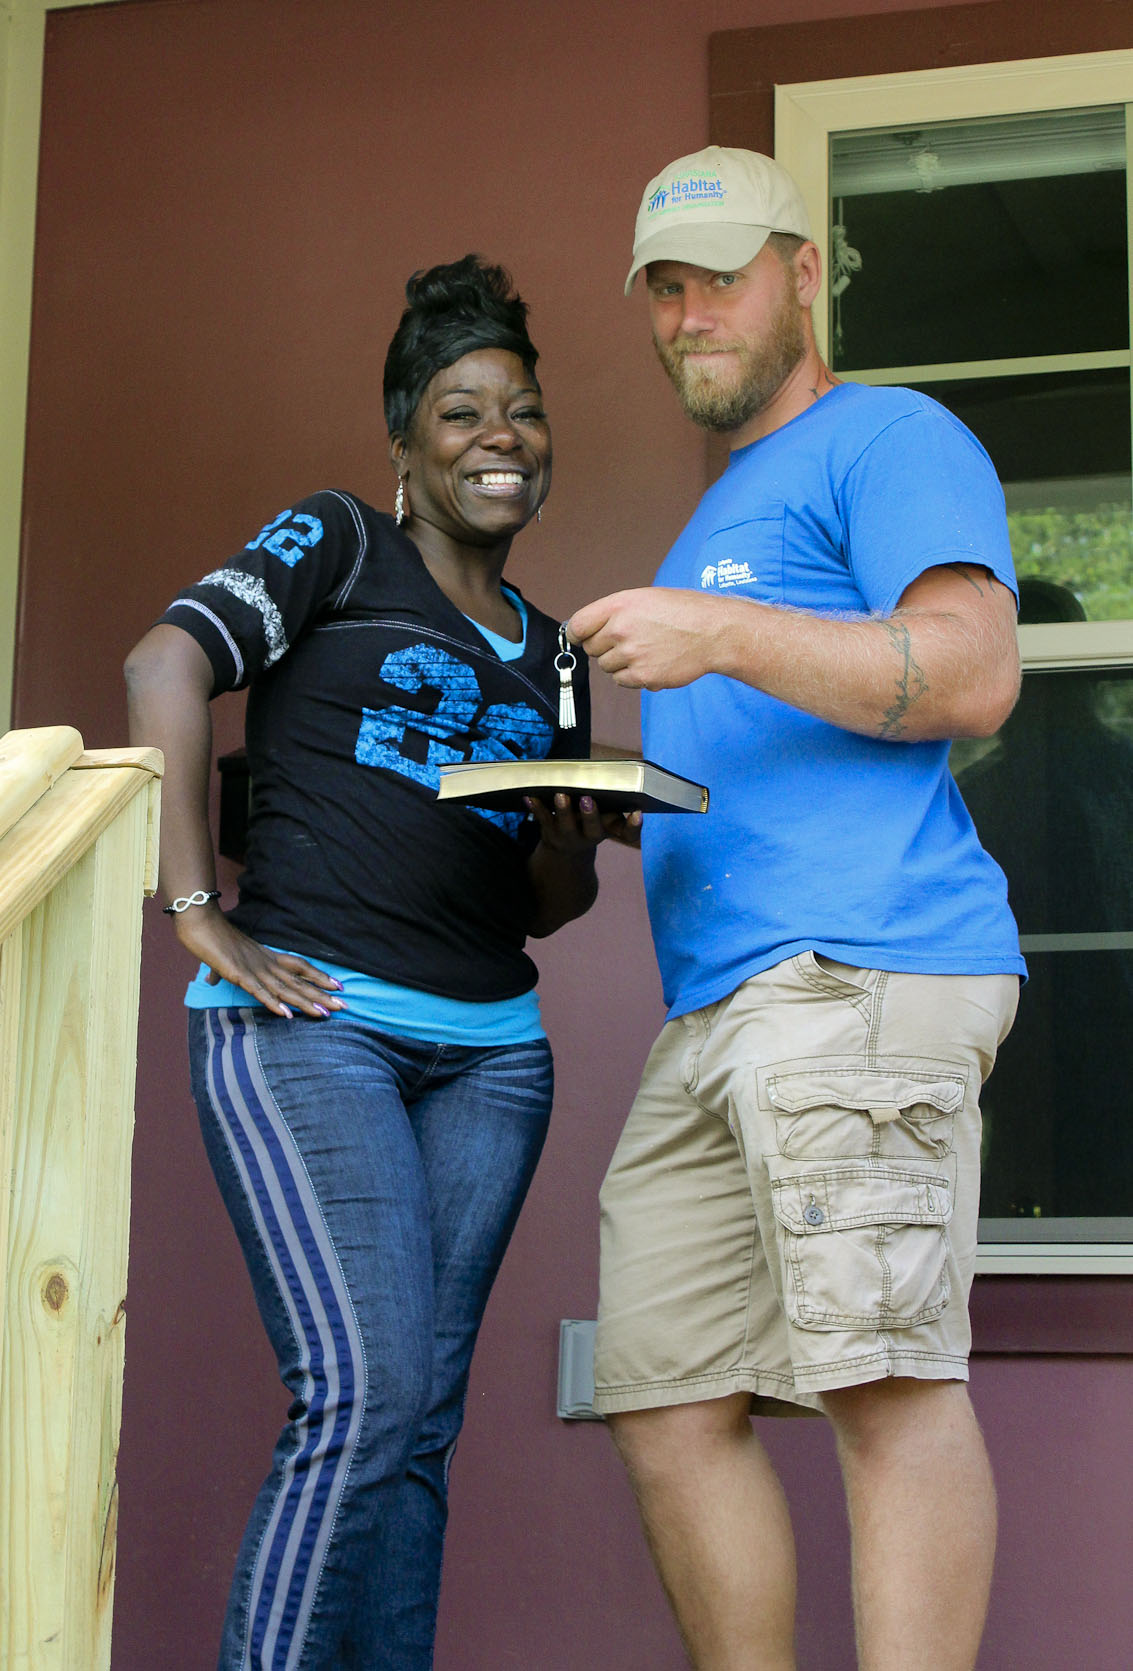 Construction staff with Homeowner